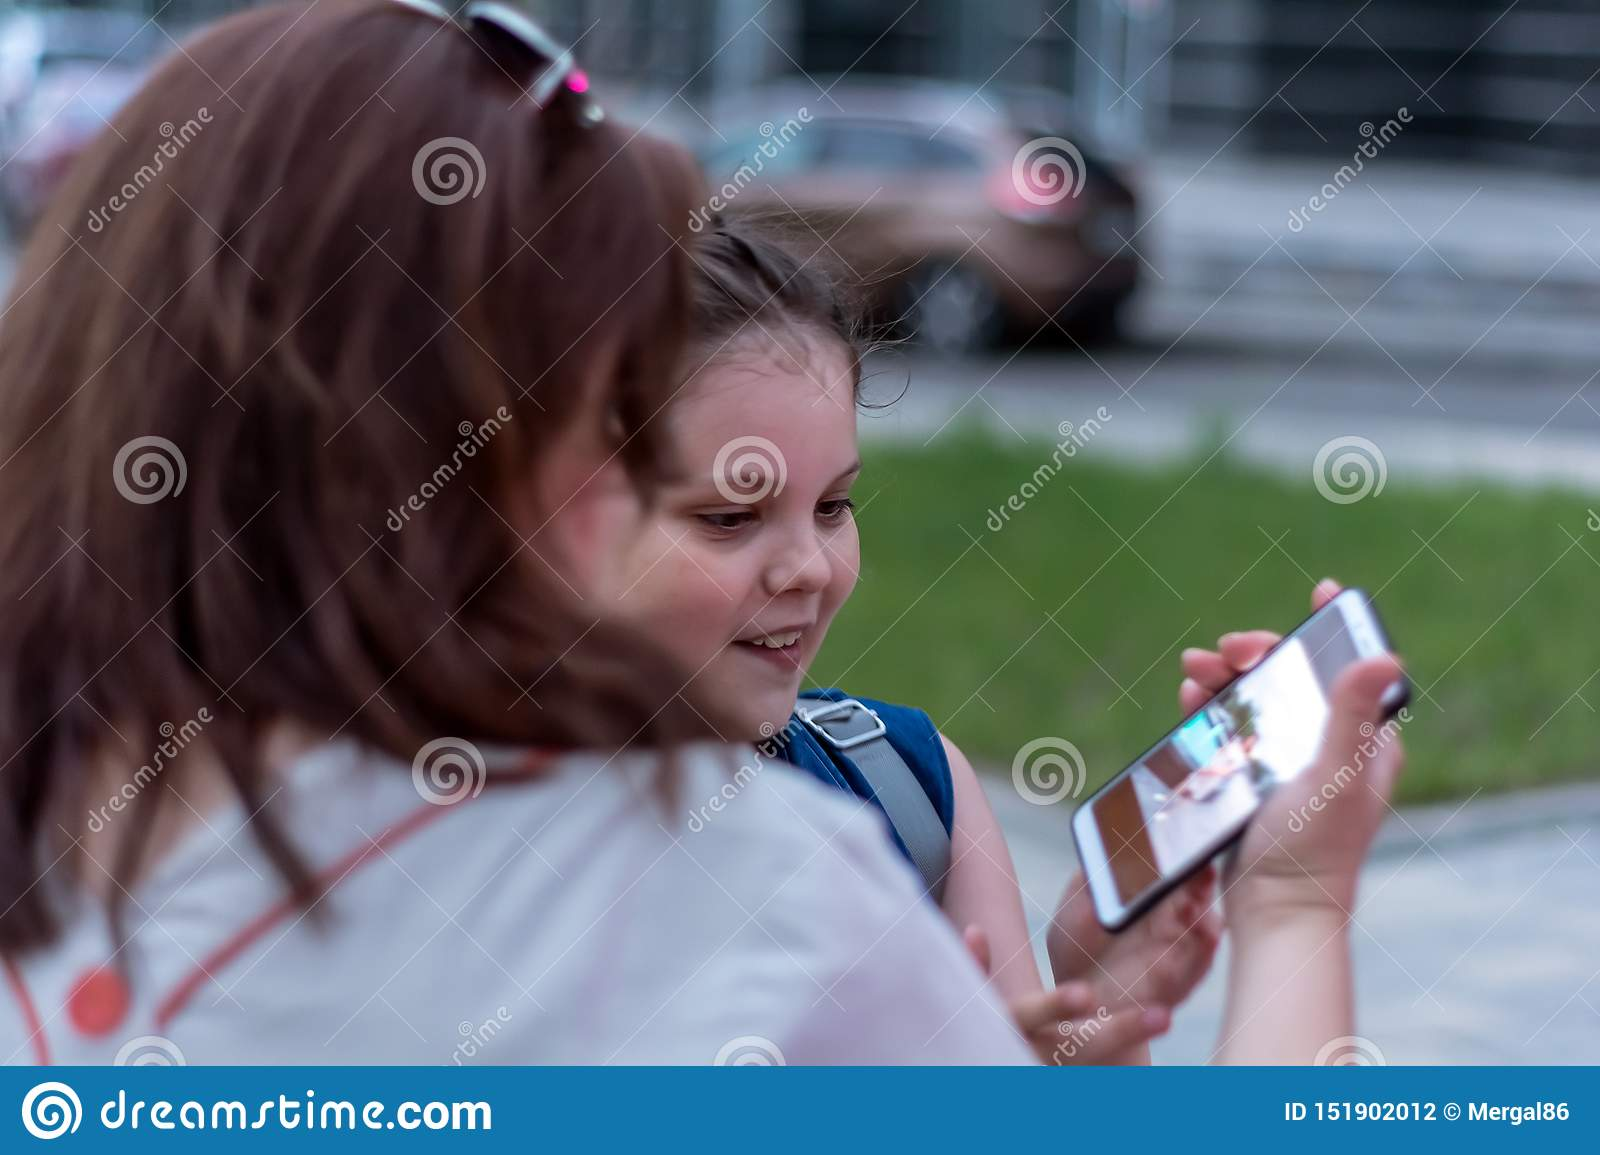 Summer evening. Holidays. Mother and daughter watch nice photo on smartphone